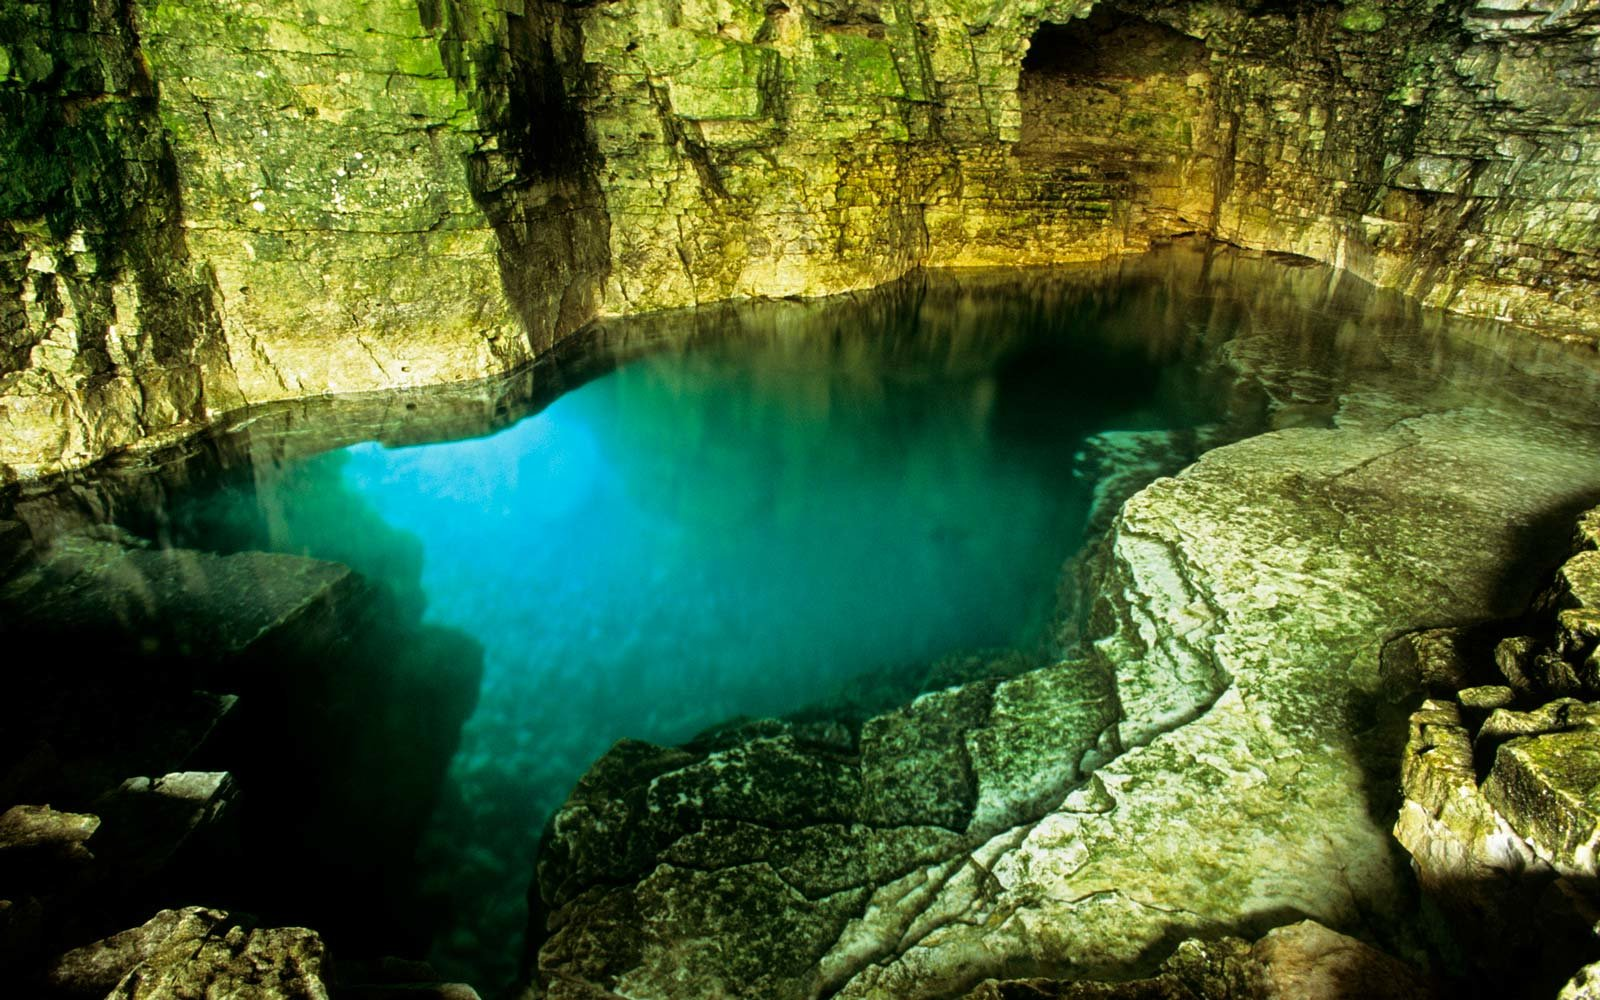 The Bruce Peninsula Grotto